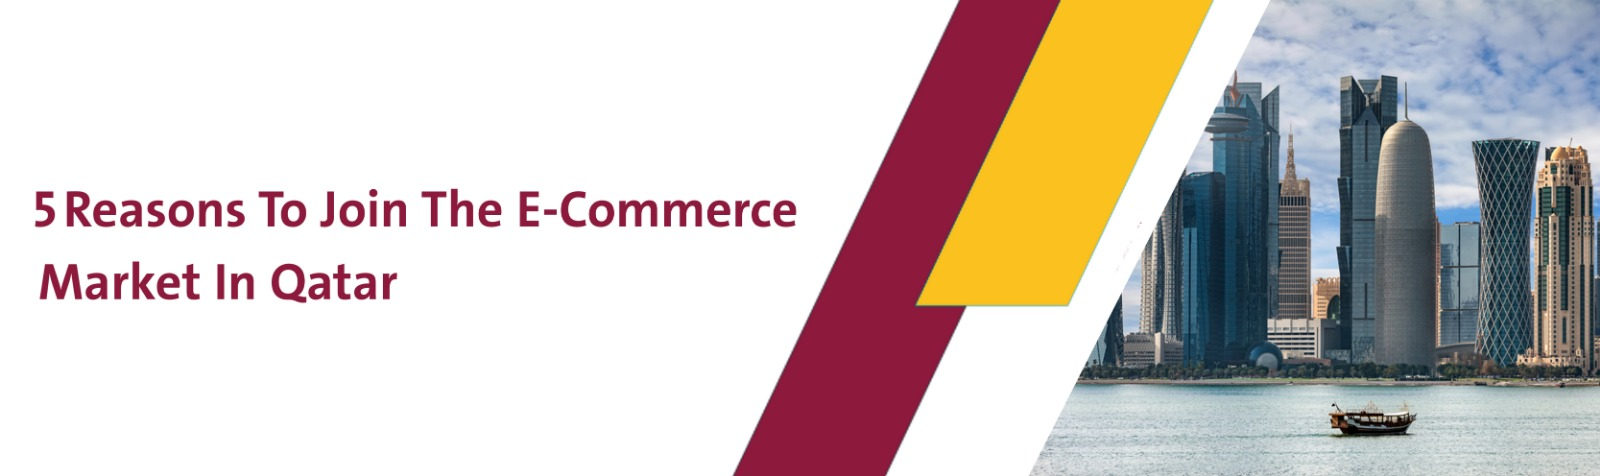 5 Reasons To Join The E-Commerce Market In Qatar